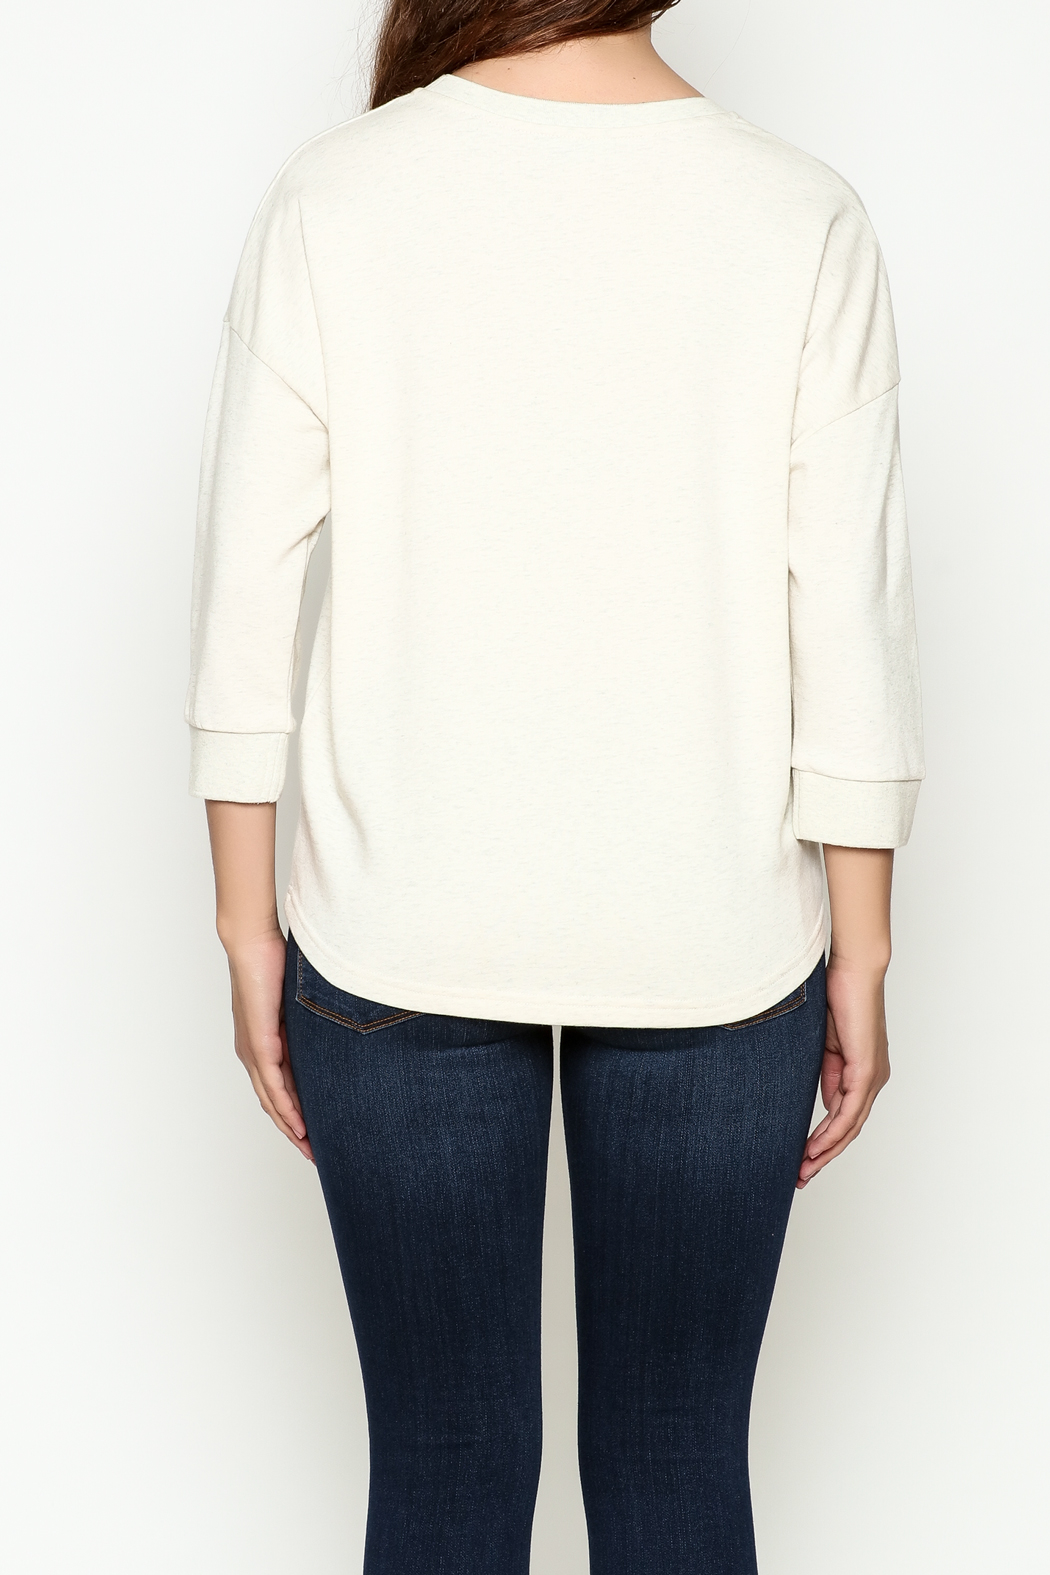 FRNCH Embroidered Sweatshirt - Back Cropped Image